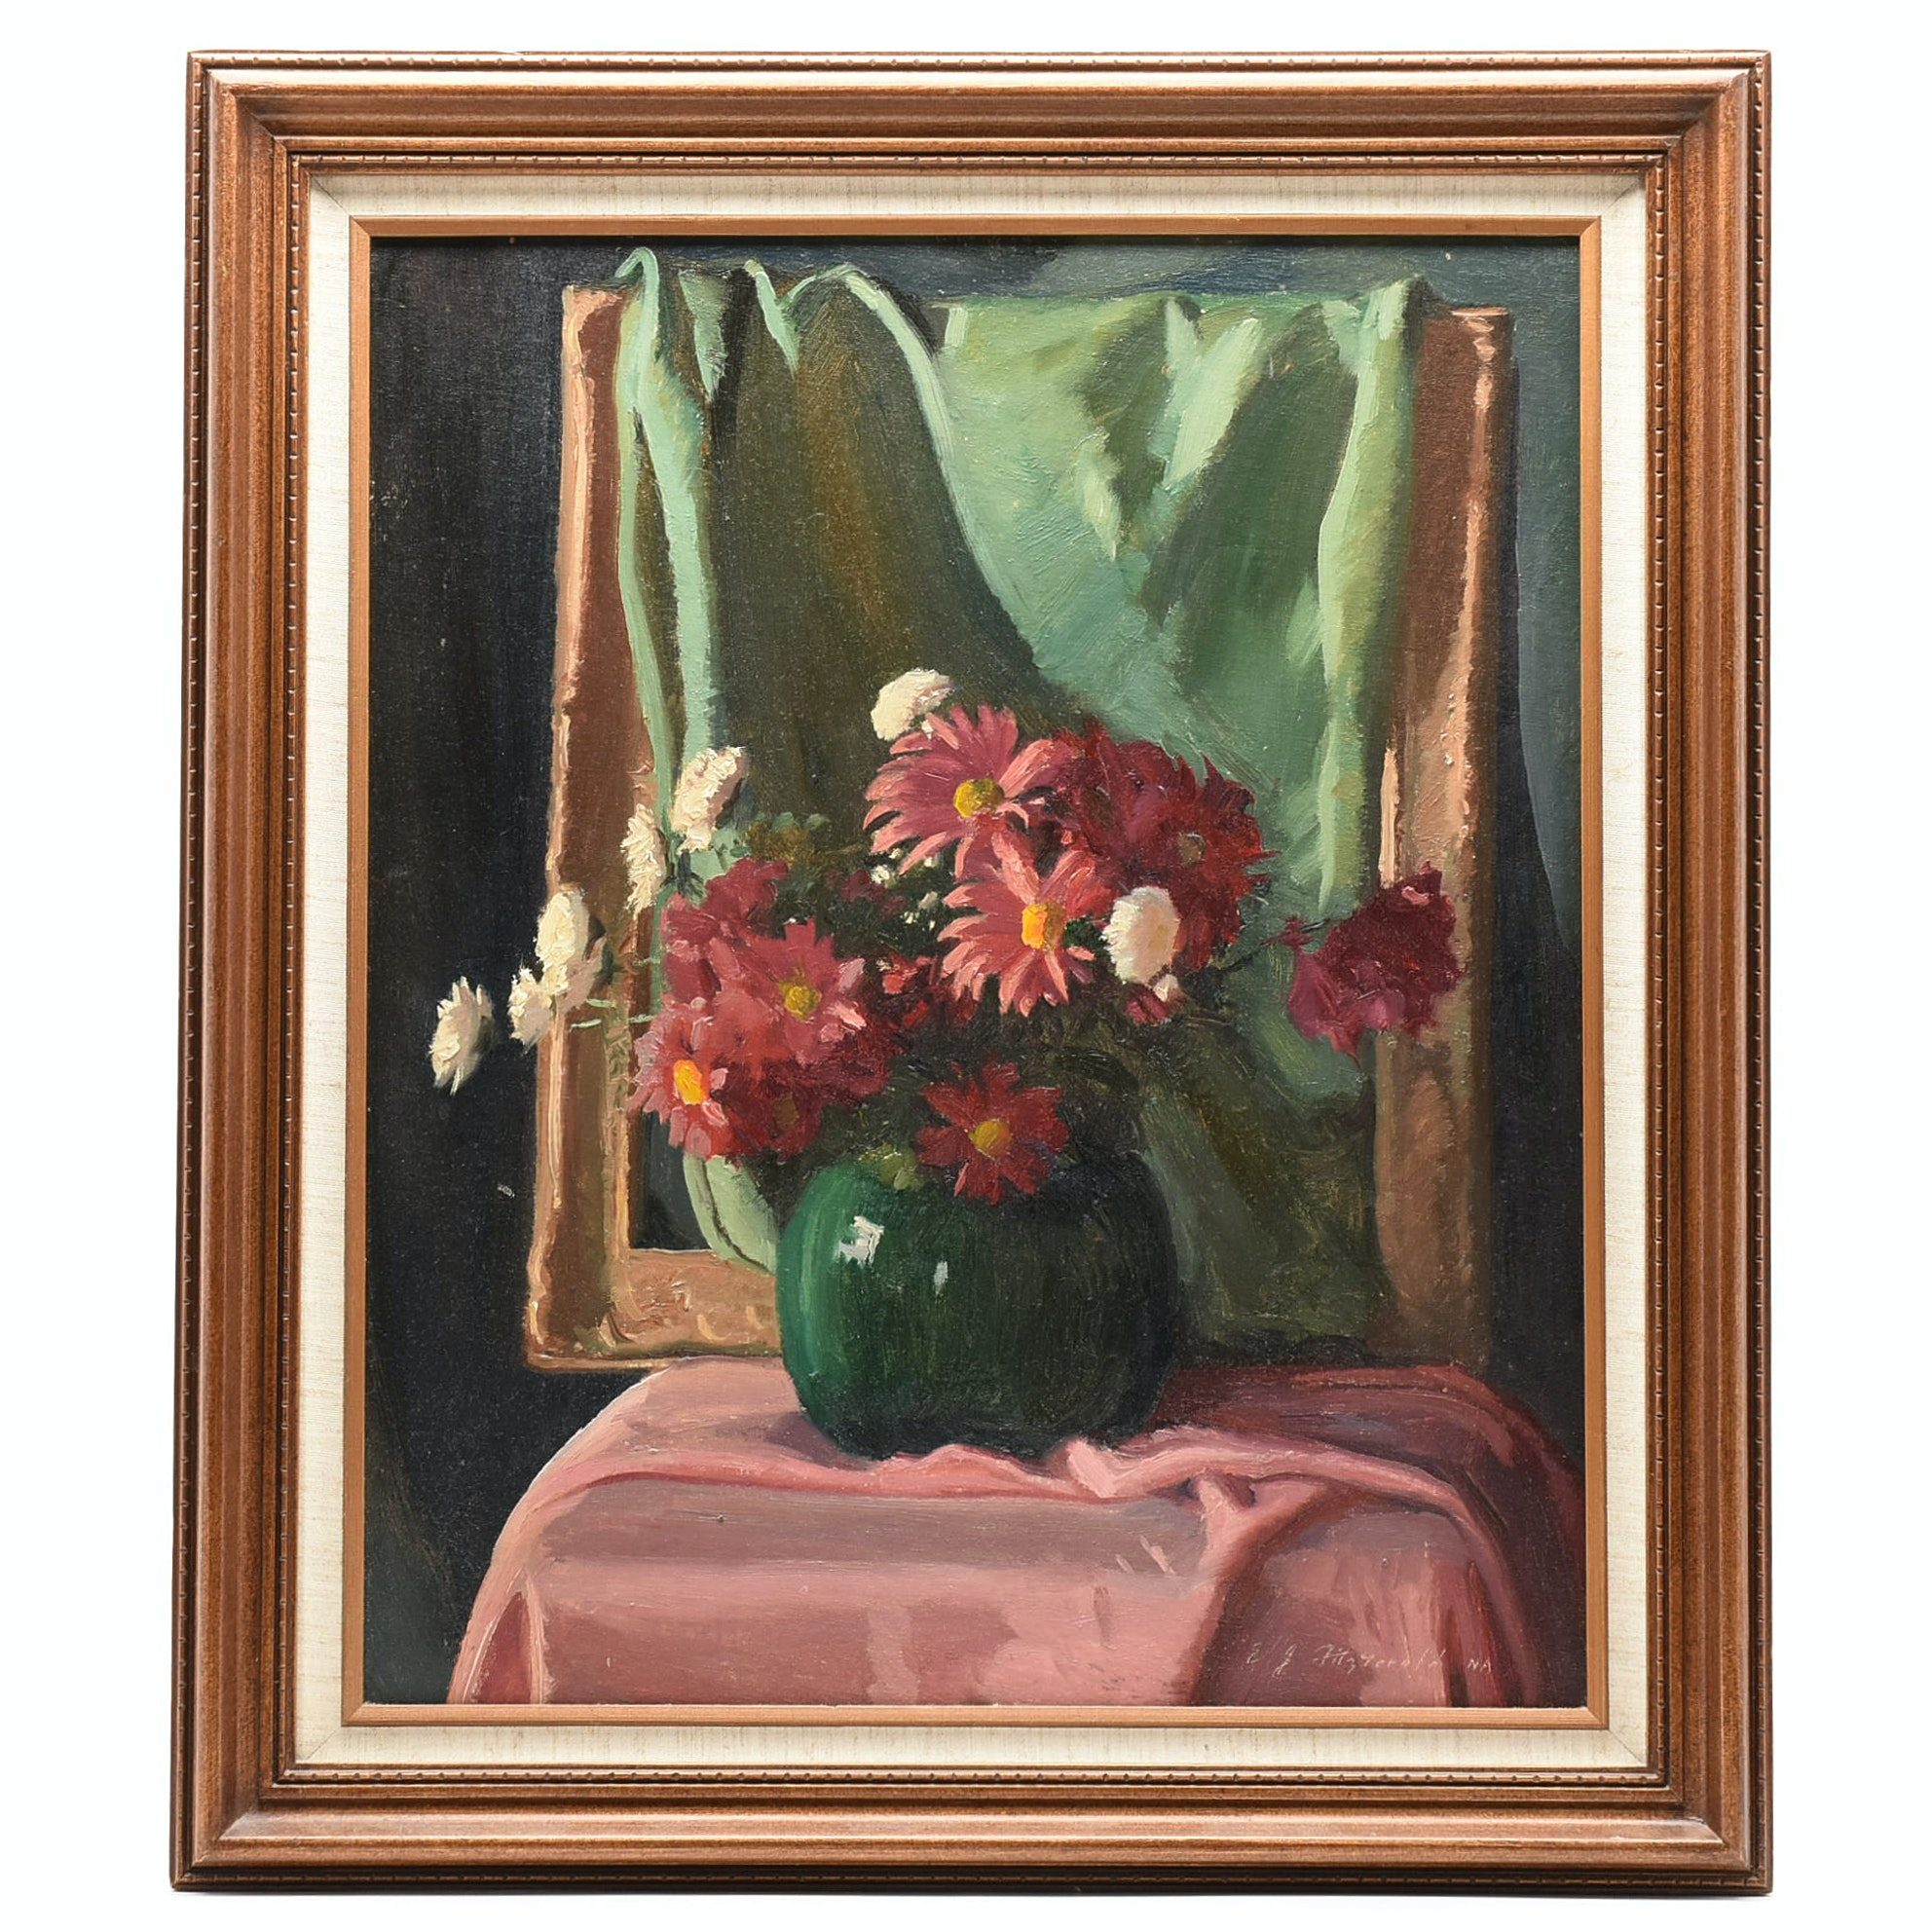 Edmond J. Fitzgerald Oil Painting on Canvas Floral Still Life